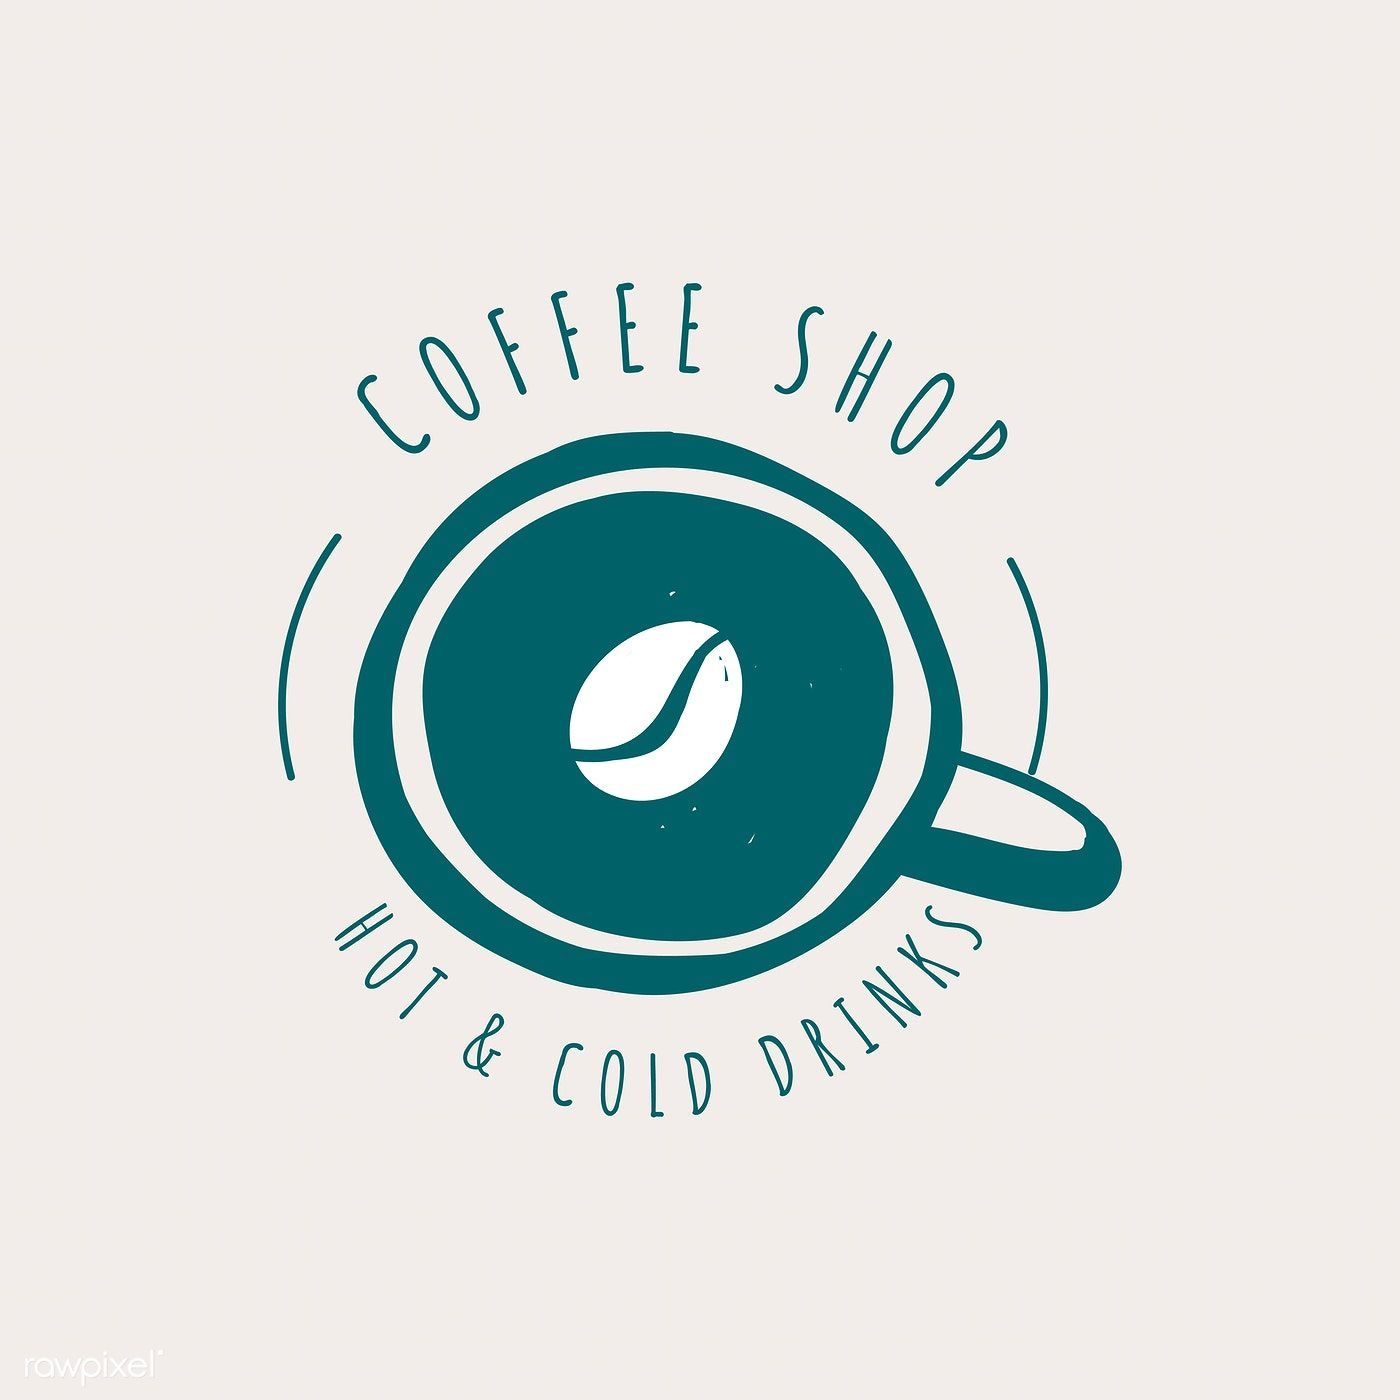 Coffee Shop Cafe Logo Vector Free Image By Rawpixel Com Cafe Logo Cafe Logo Design Coffee Shop Logo